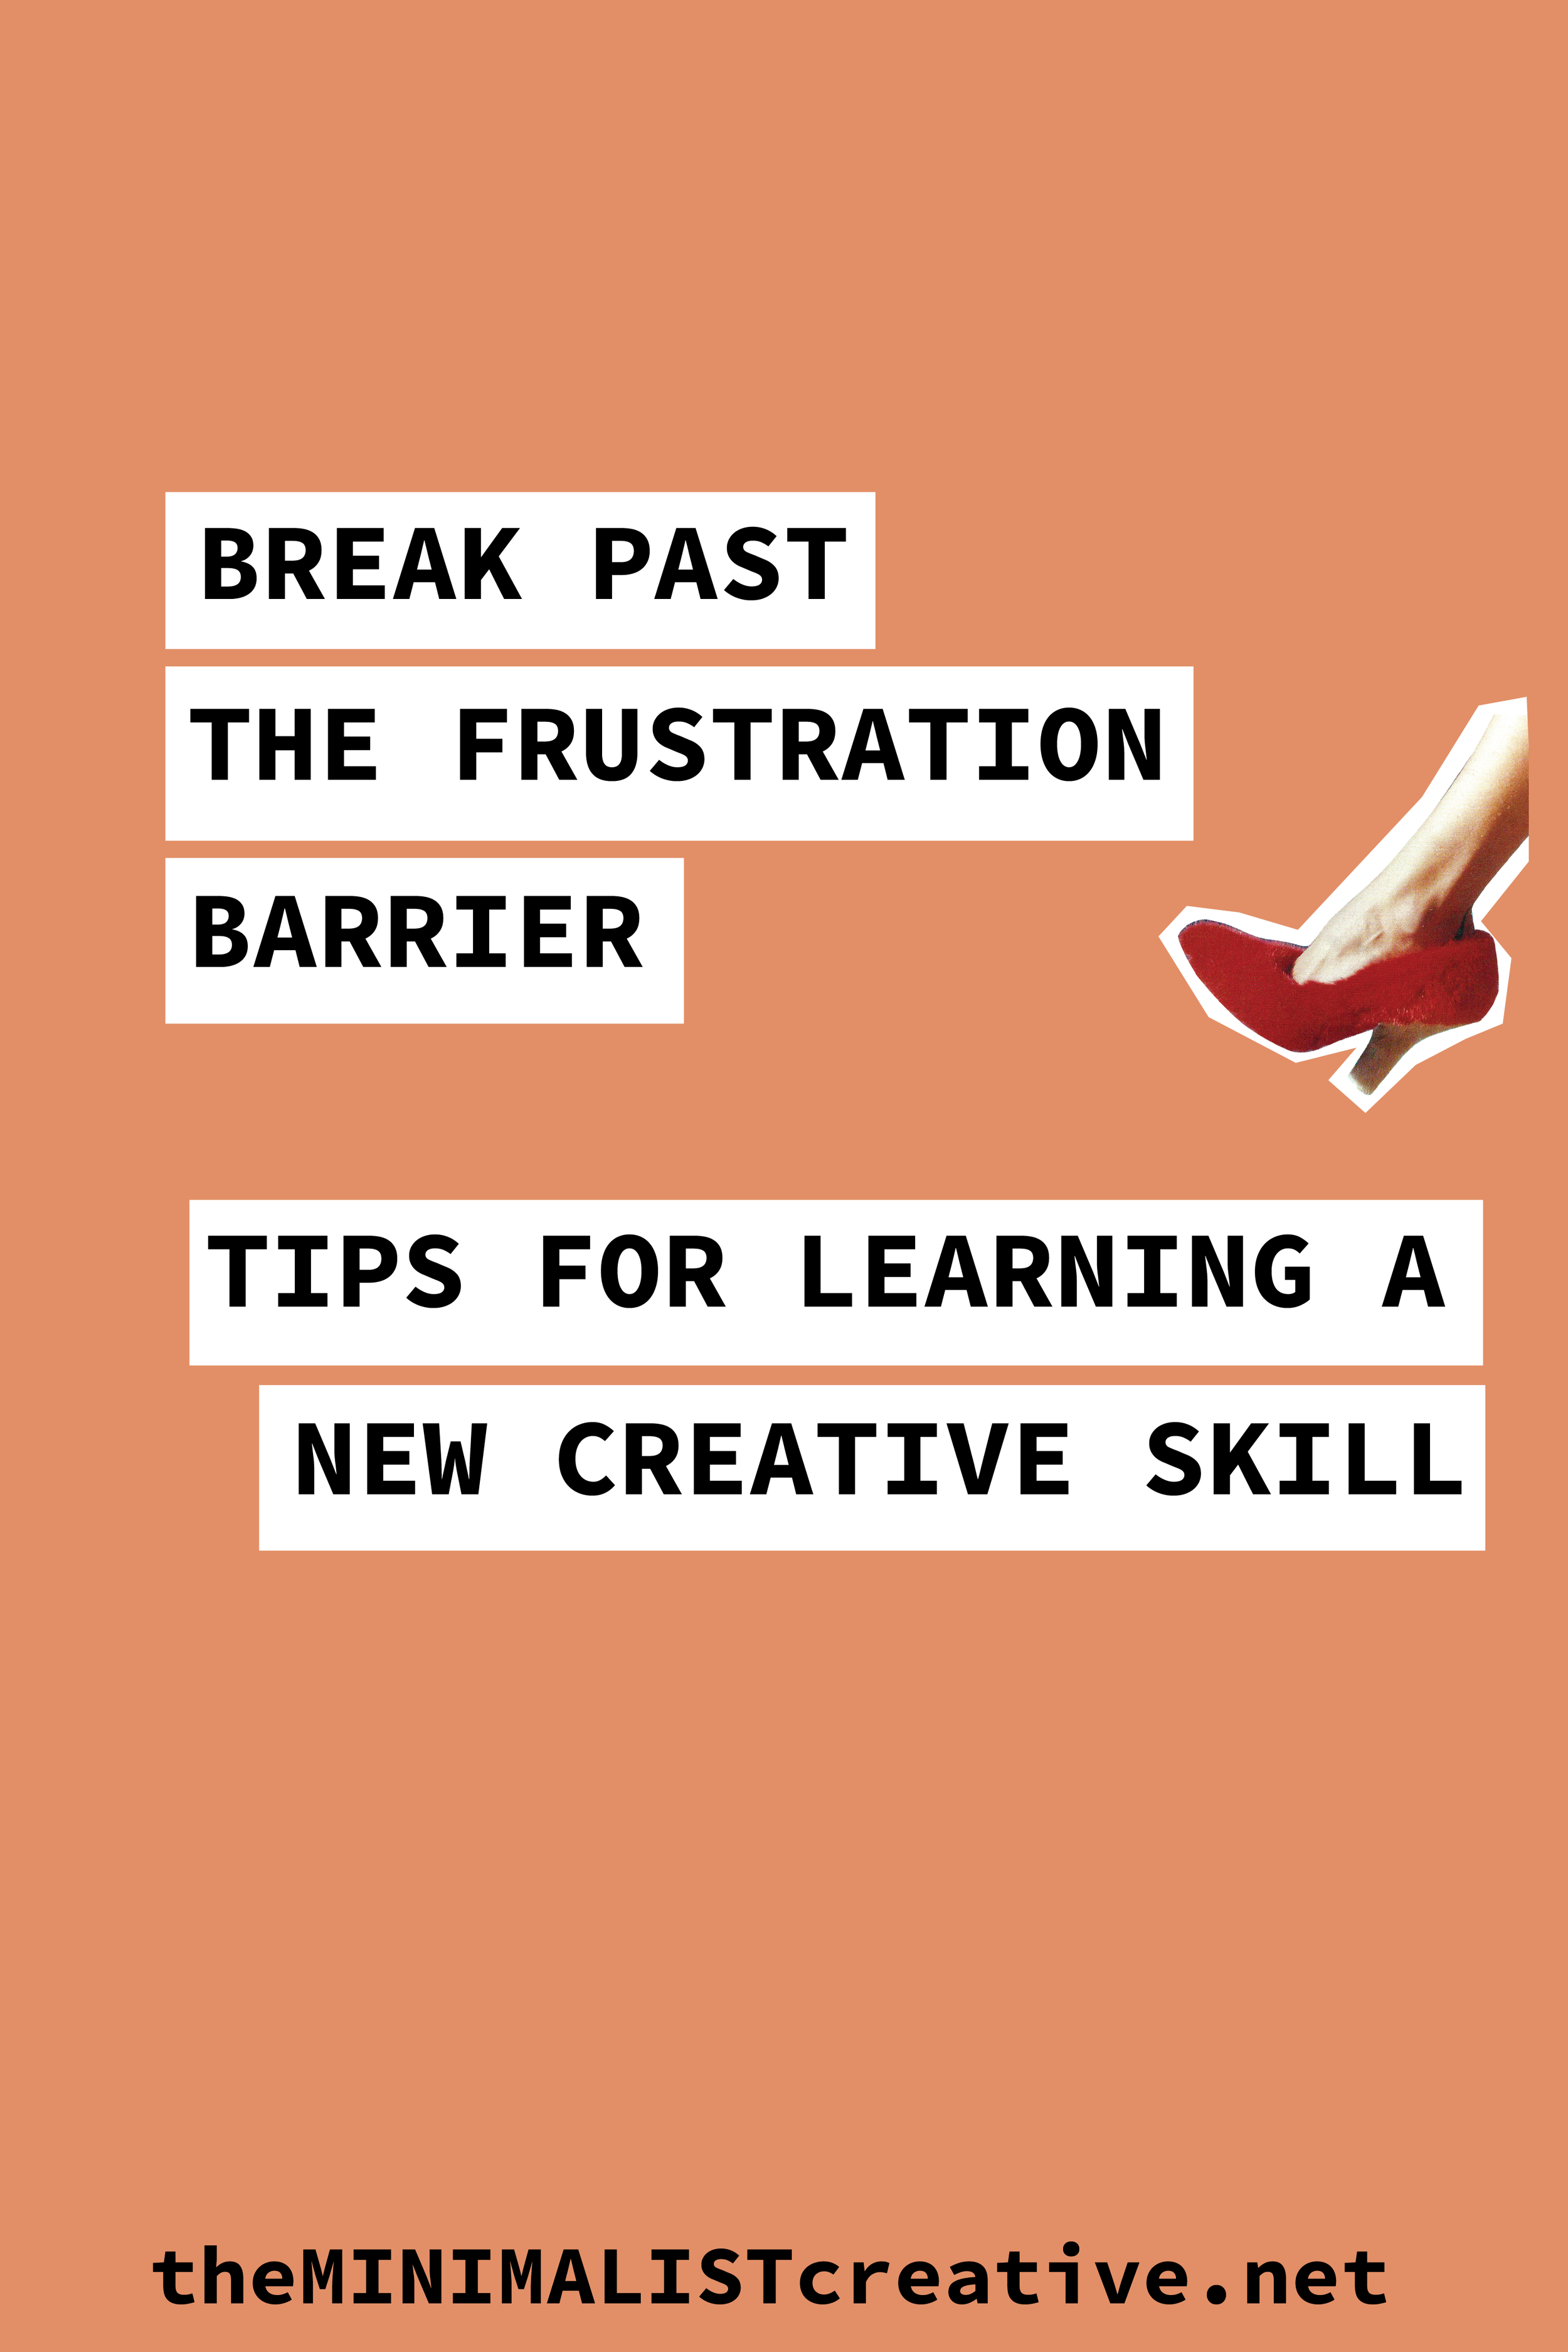 Break Past The Frustration Barrier: Tips For Learning a New Creative Skill